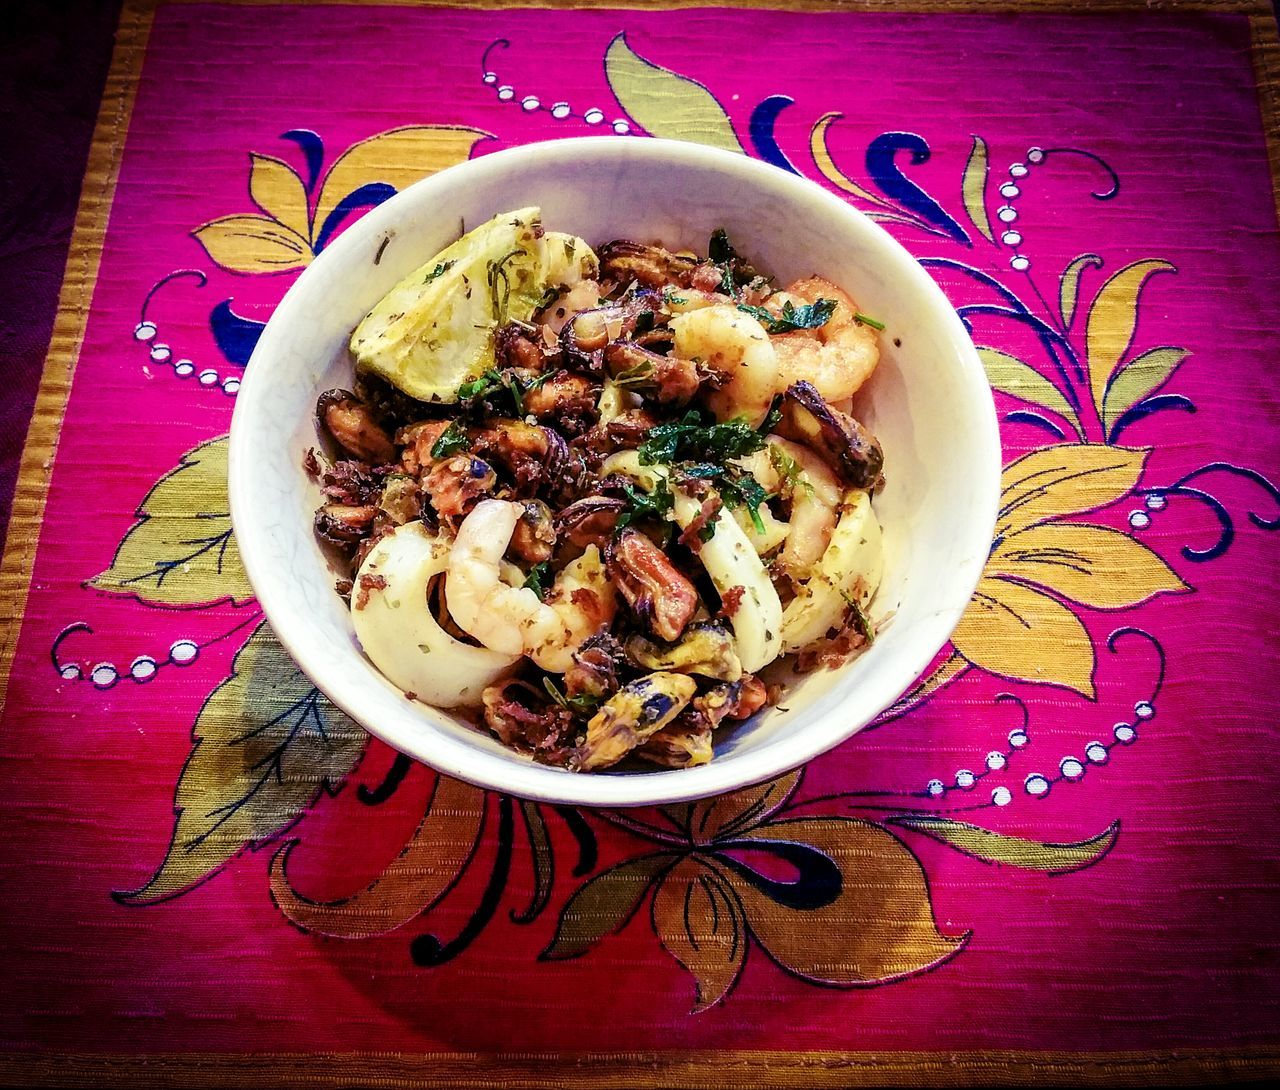 Fried Seafoods with Lime Wedges Healthy Eating Food Food And Drink Ready-to-eat Bowl No People High Angle View Plate Indoors  Directly Above Freshness Serving Size Day Folk Pink